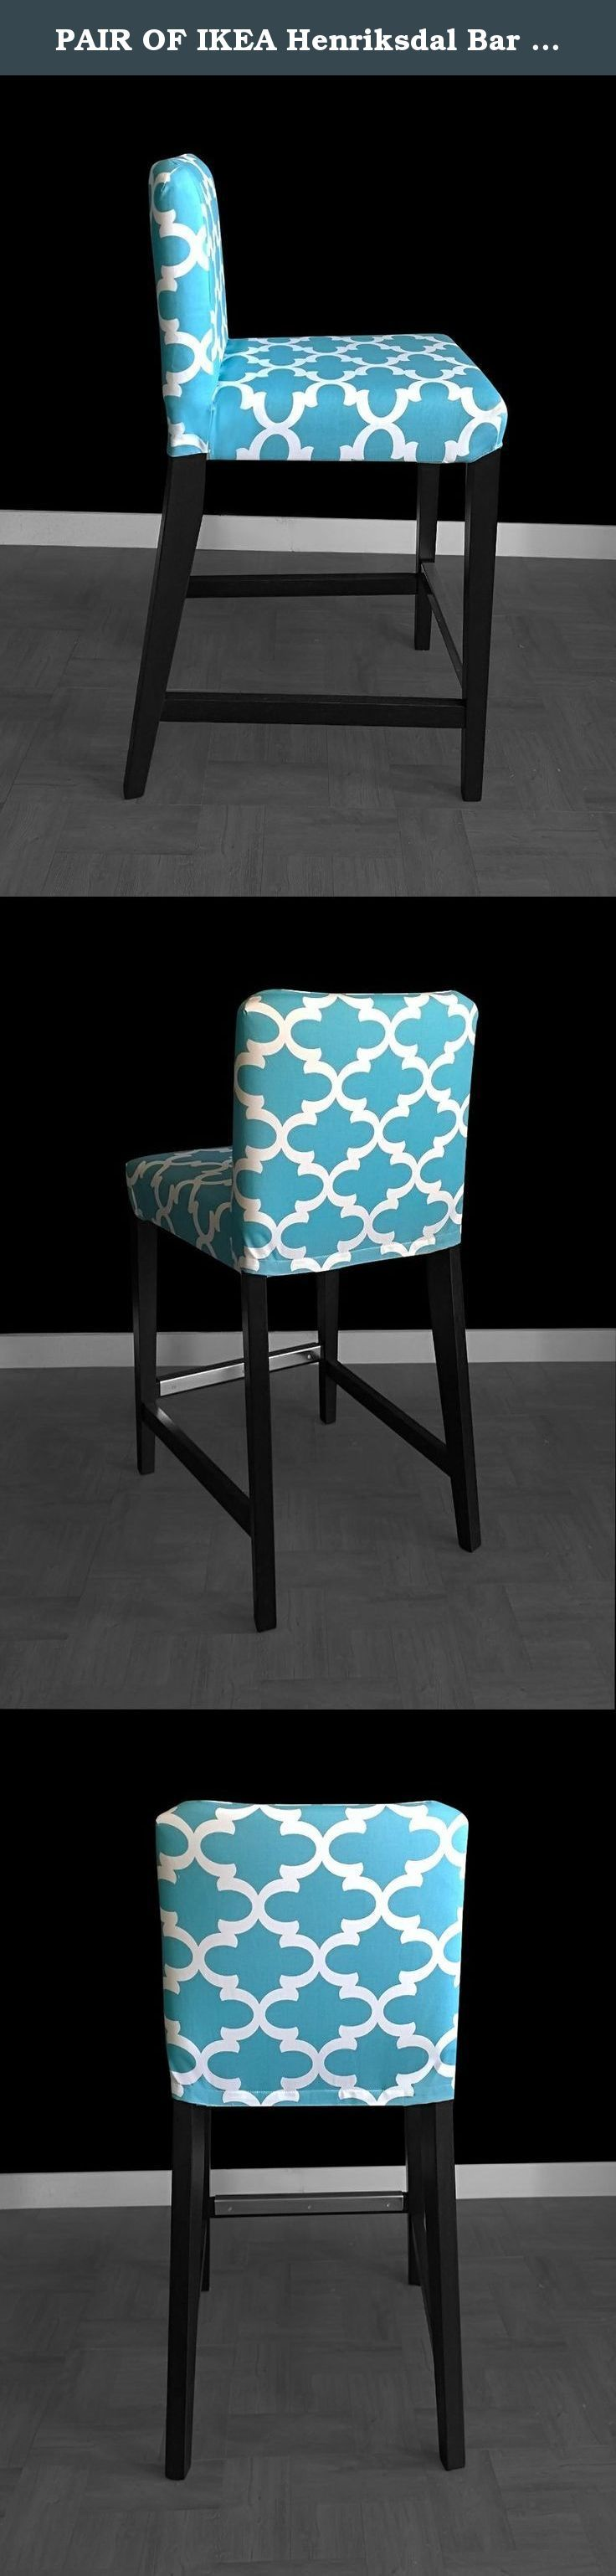 1000 Ideas About Bar Stool Covers On Pinterest Stool